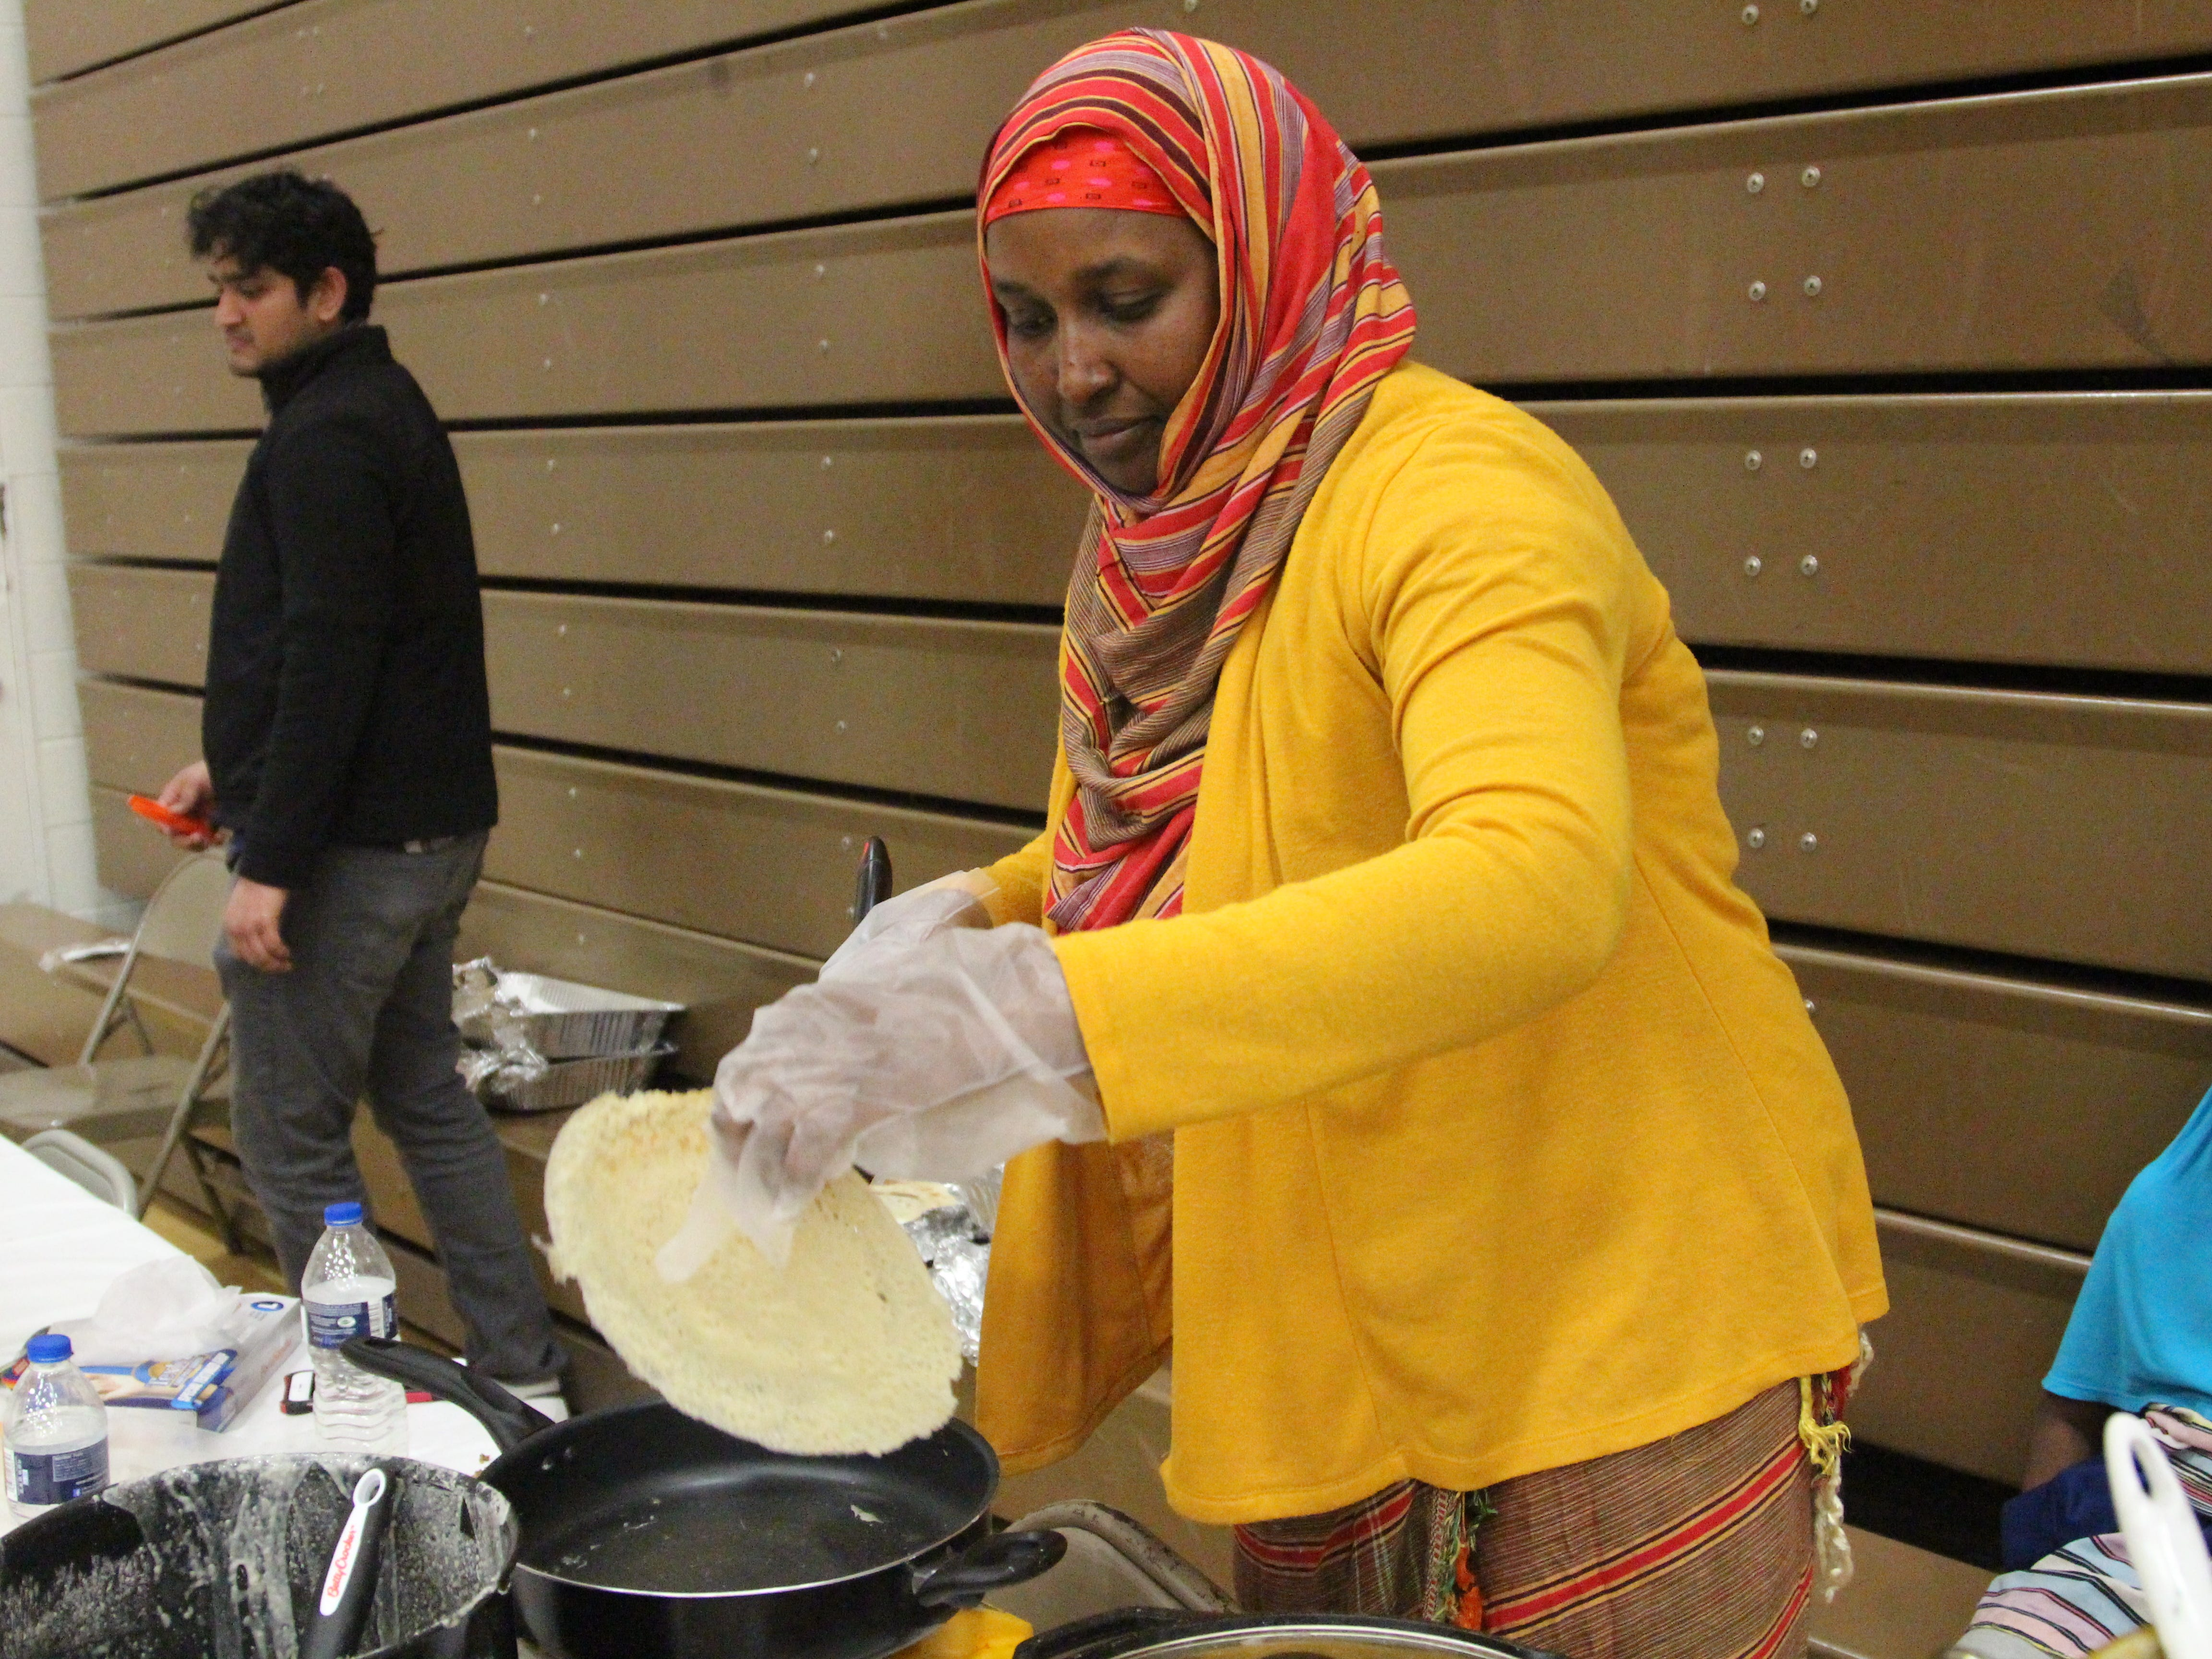 Nasra Abubakar, a lecturer in sociology at The Ohio State University at Marion, makes Somali bread, which she serves with a vegetable stew, Thursday at OSU-M's 12th Annual International Festival. She said the bread is typically eaten for breakfast, but can be served at dinnertime, too.